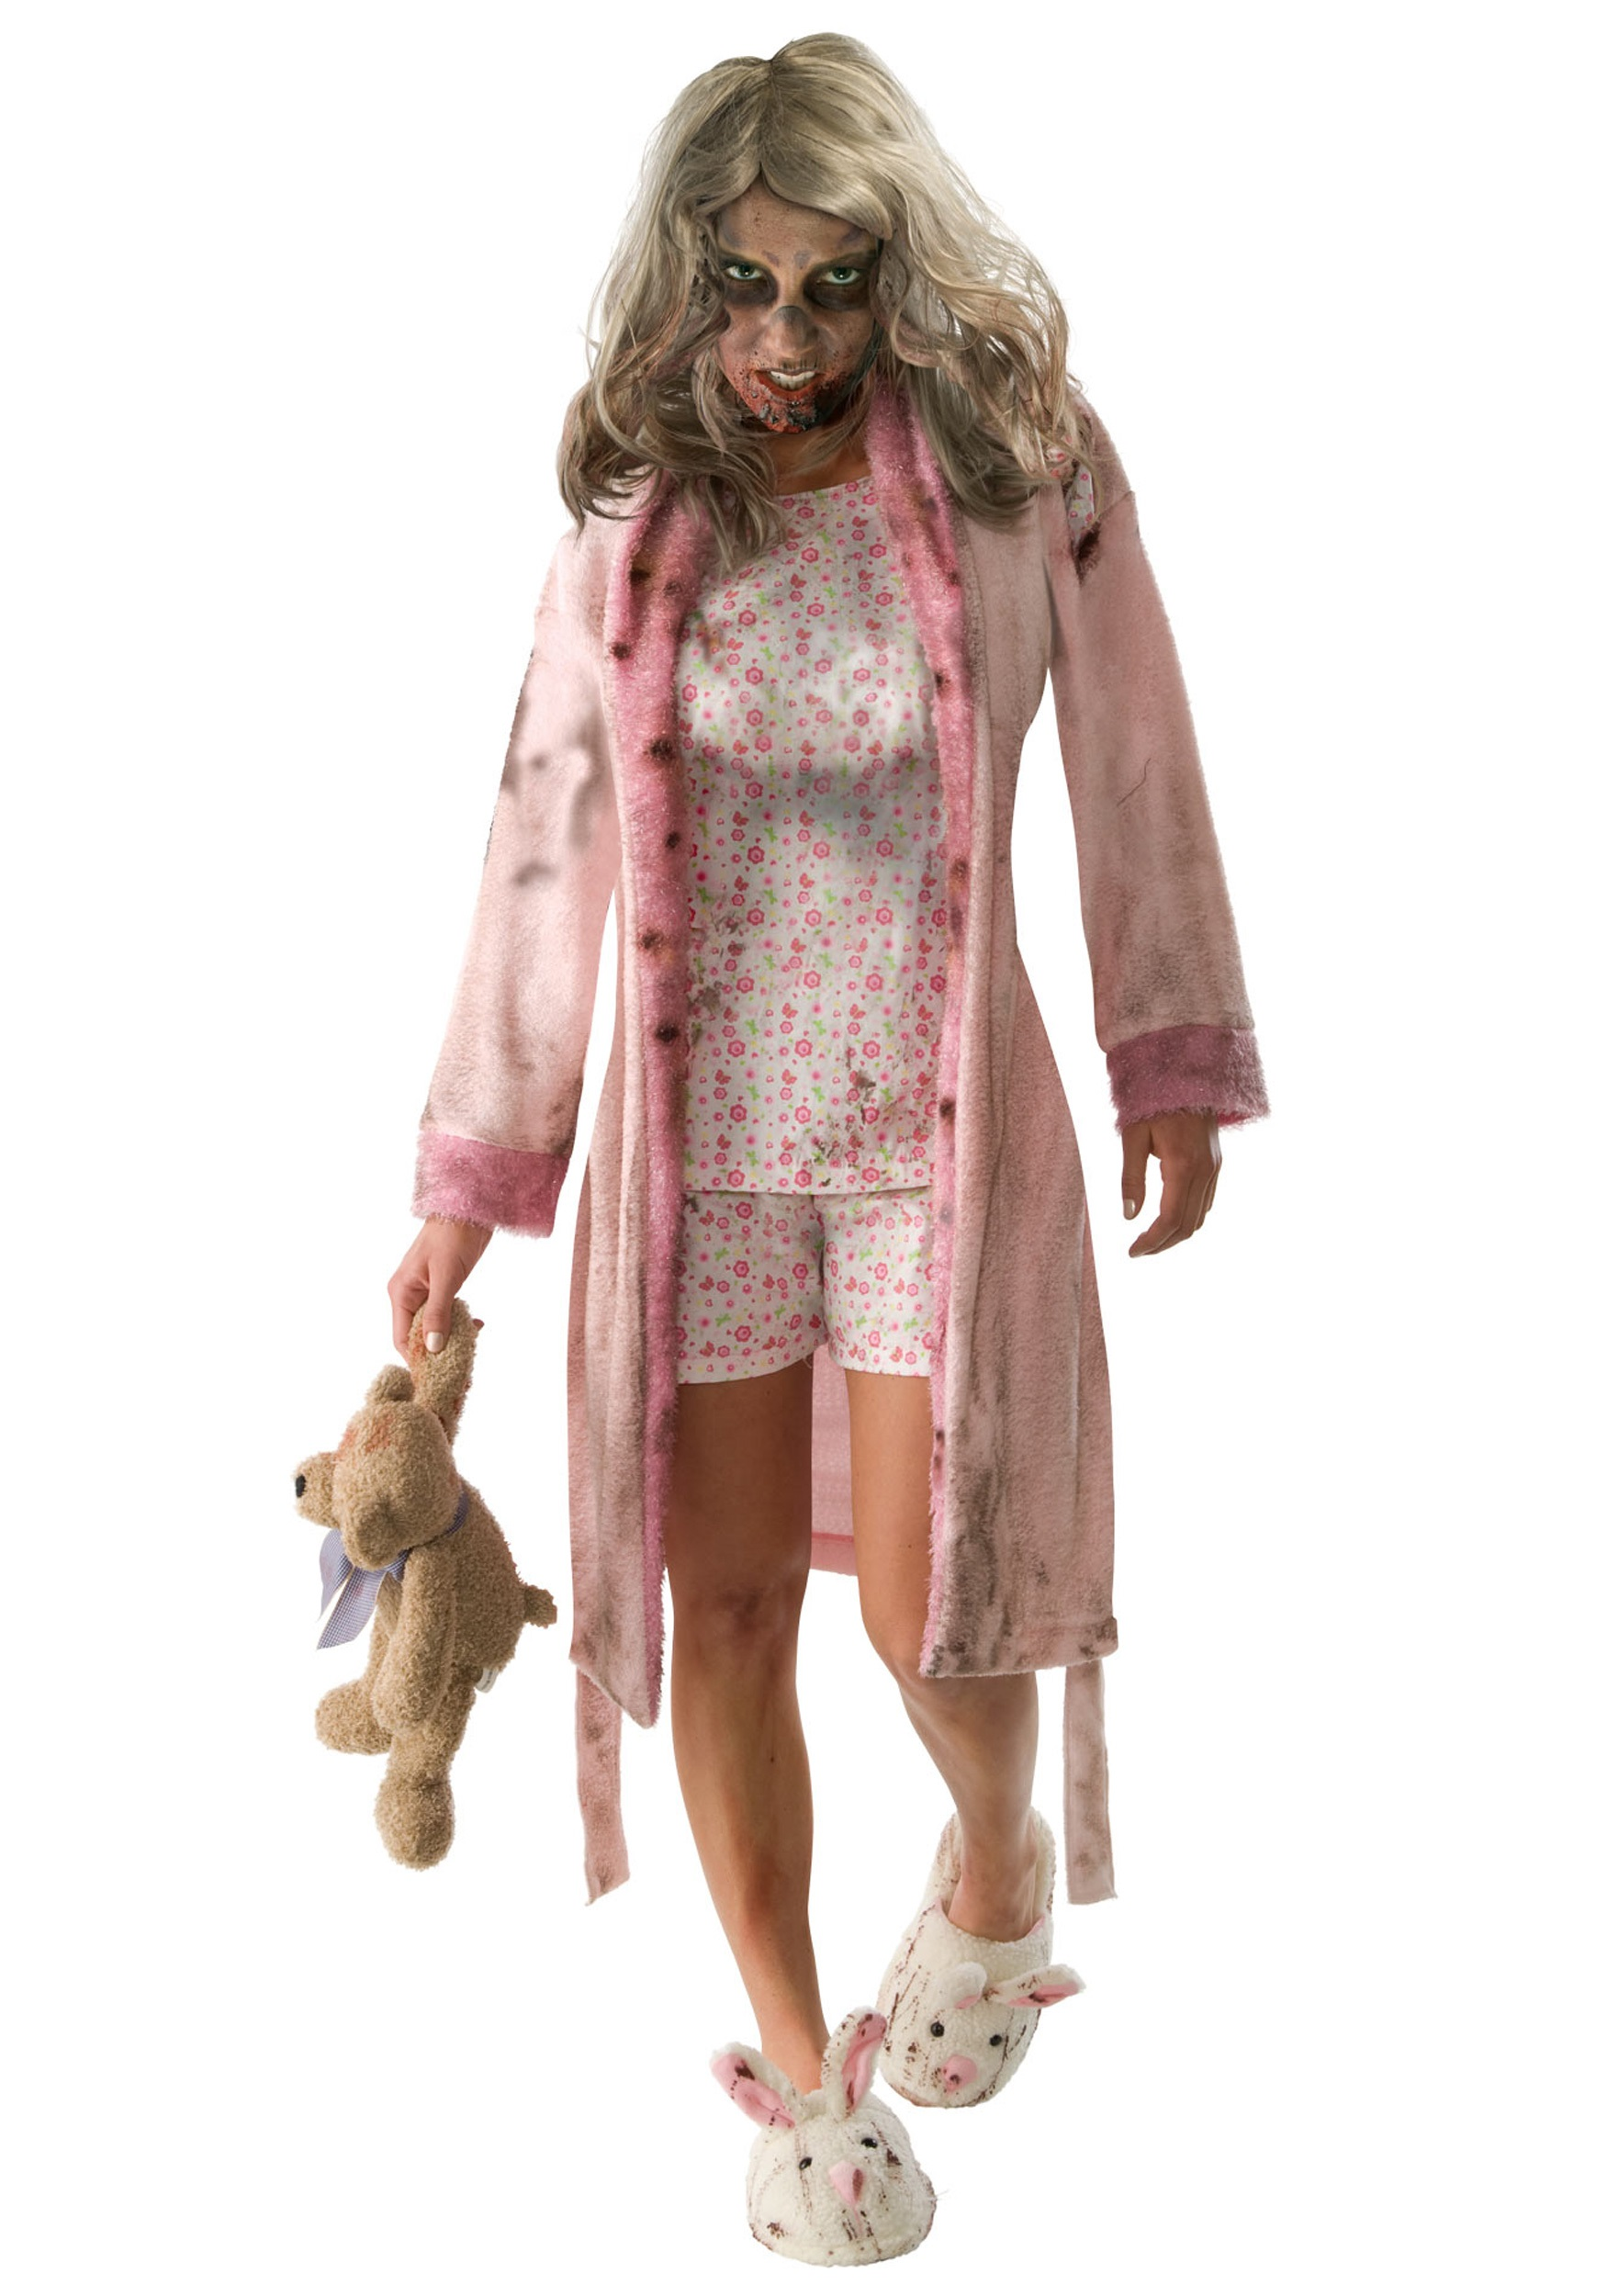 Adult Little Girl Zombie Costume  sc 1 st  Halloween Costumes & Adult Little Girl Zombie Costume - Halloween Costumes